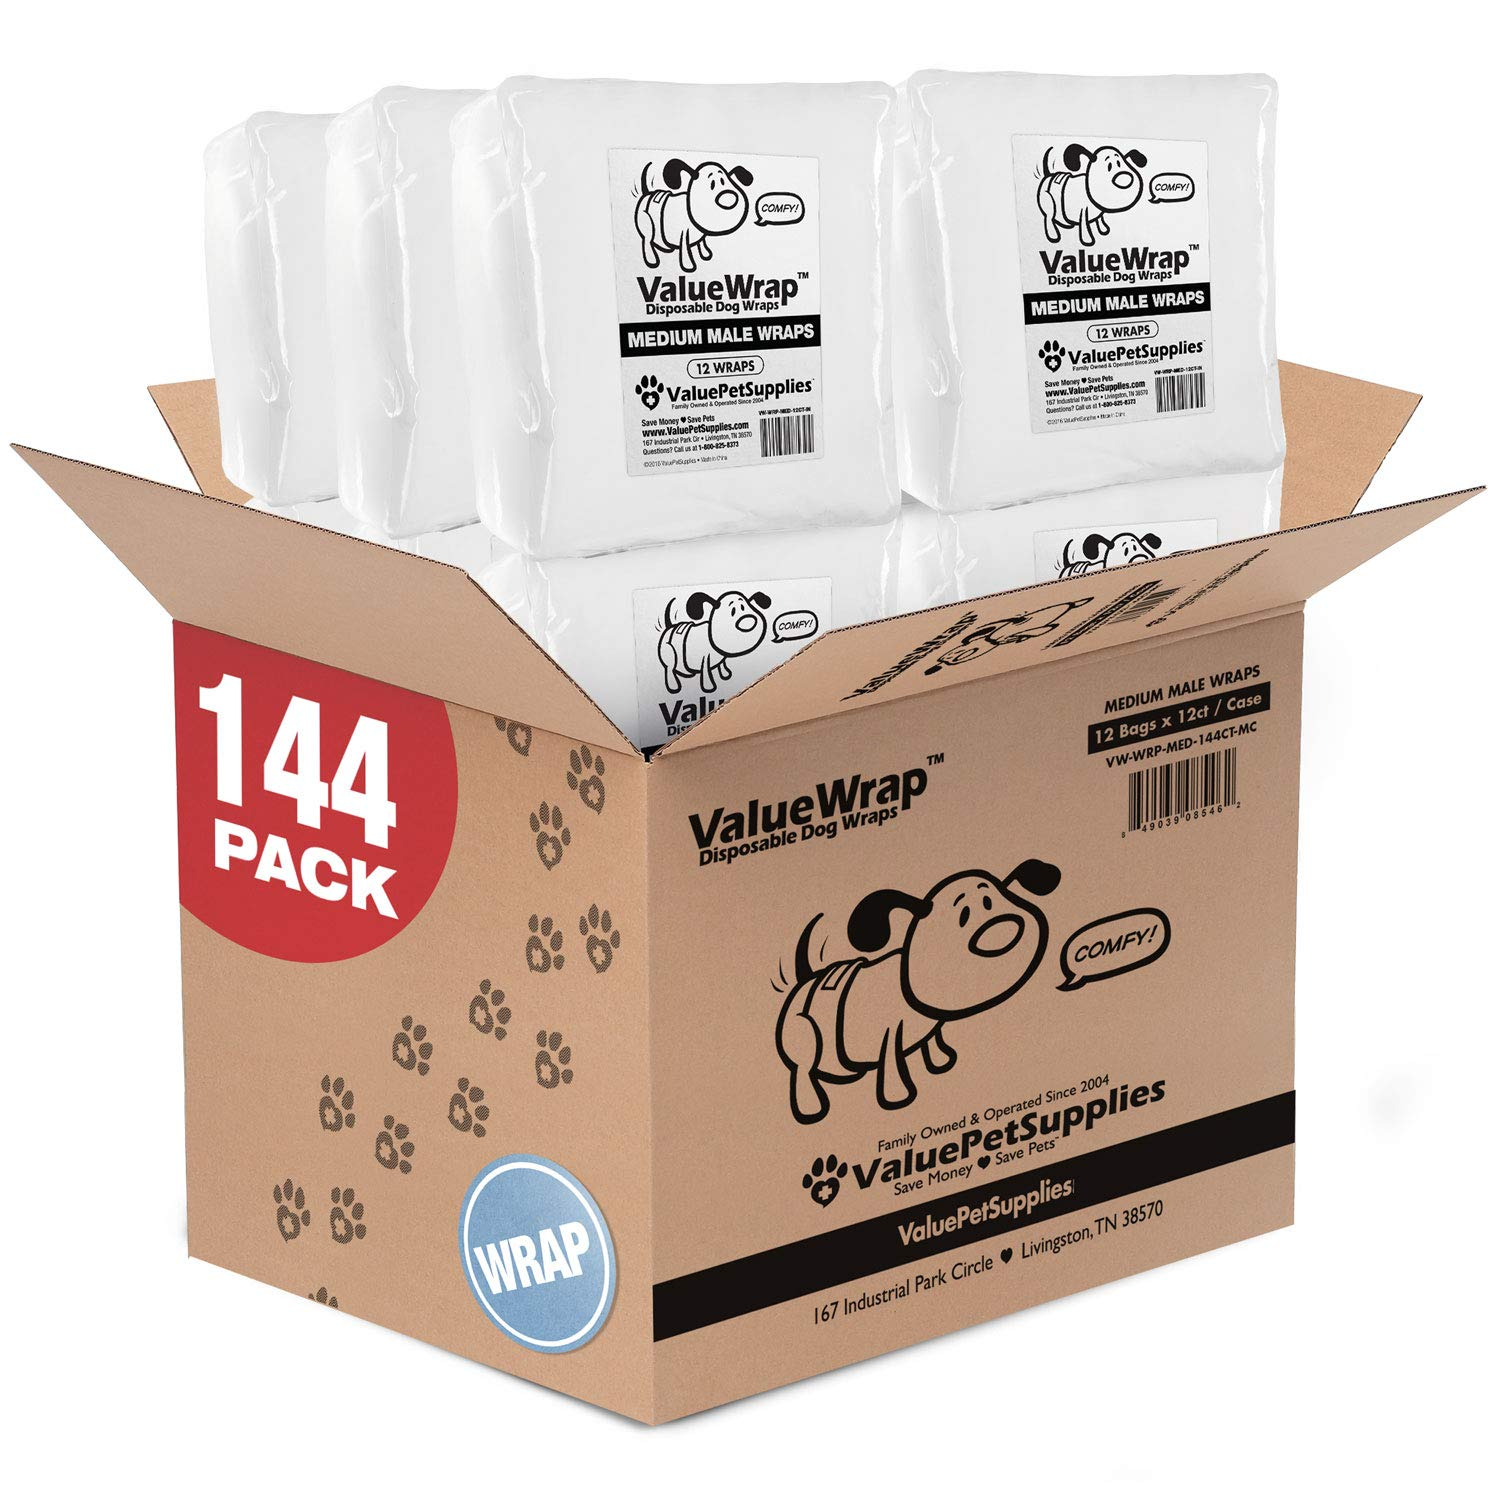 ValueWrap Disposable Male Dog Diapers, 2-Tab Medium, 144 Count - Absorbent Male Wraps for Incontinence, Excitable Urination & Travel   Fur-Friendly Fasteners   Leak Protection   Wetness Indicator